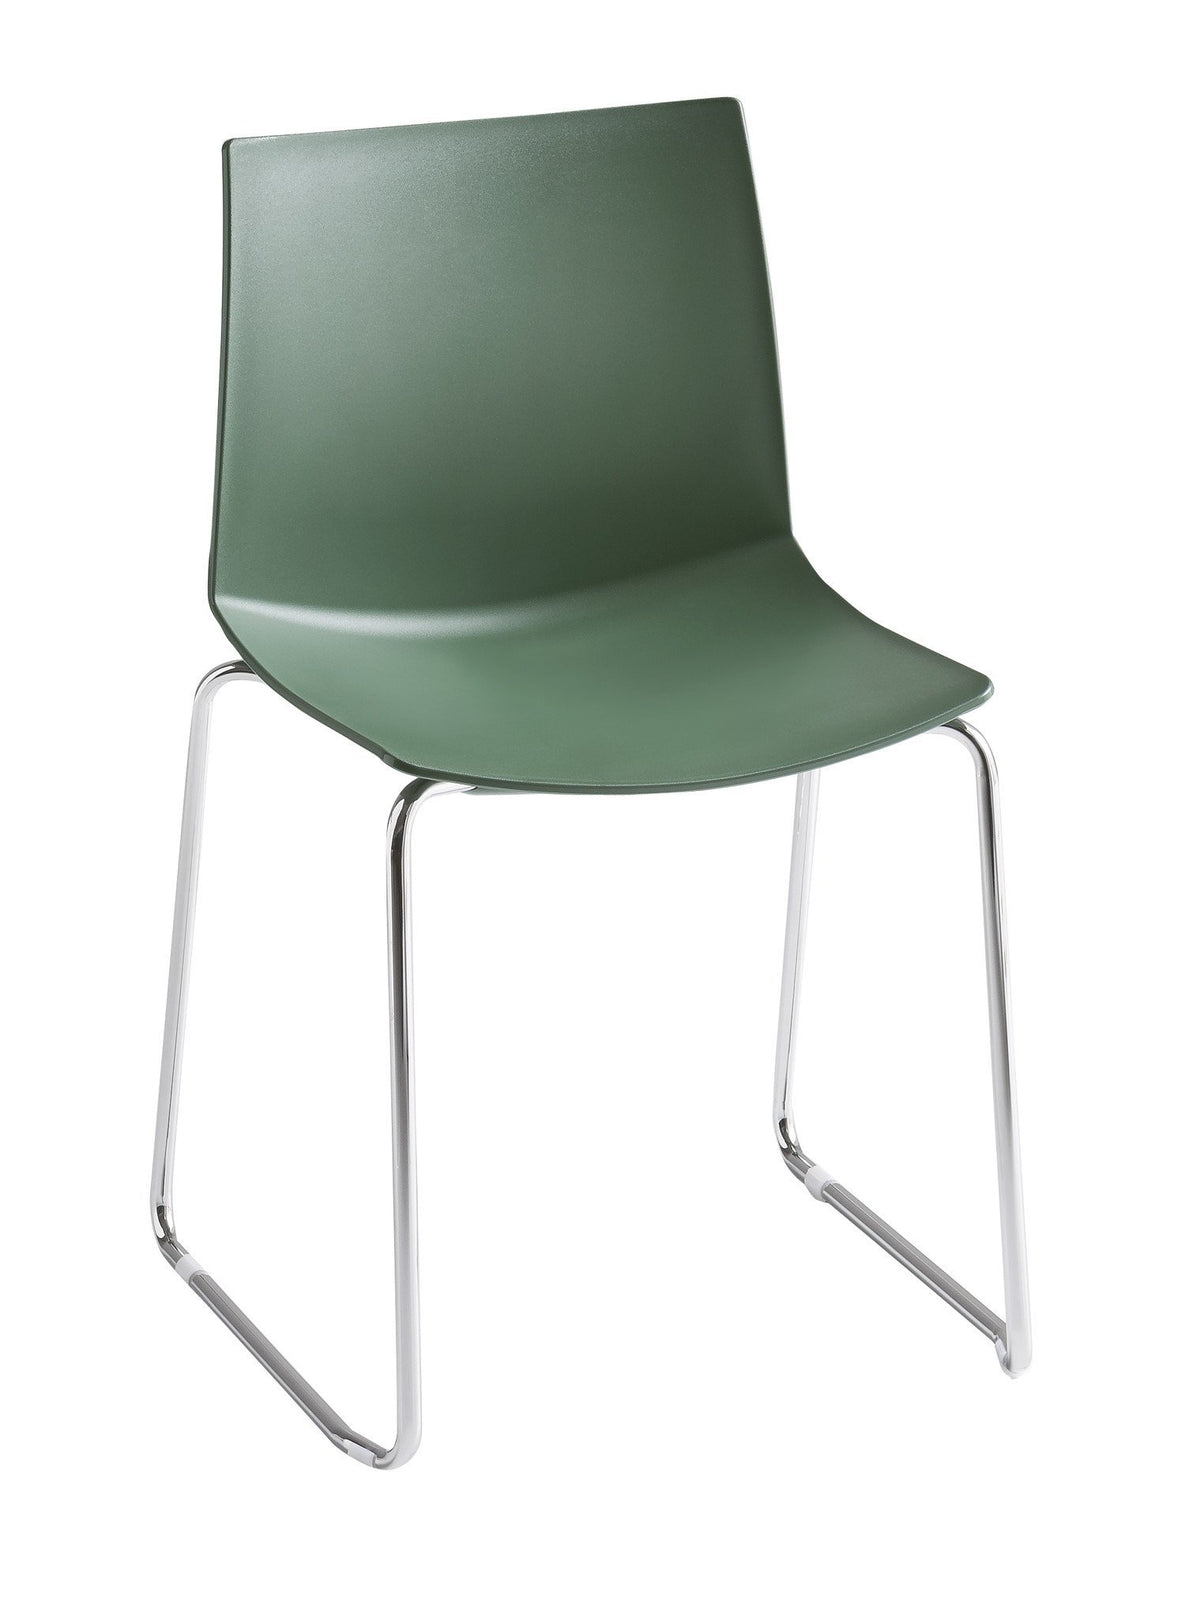 Kanvas Side Chair c/w Sled Legs-Gaber-Contract Furniture Store